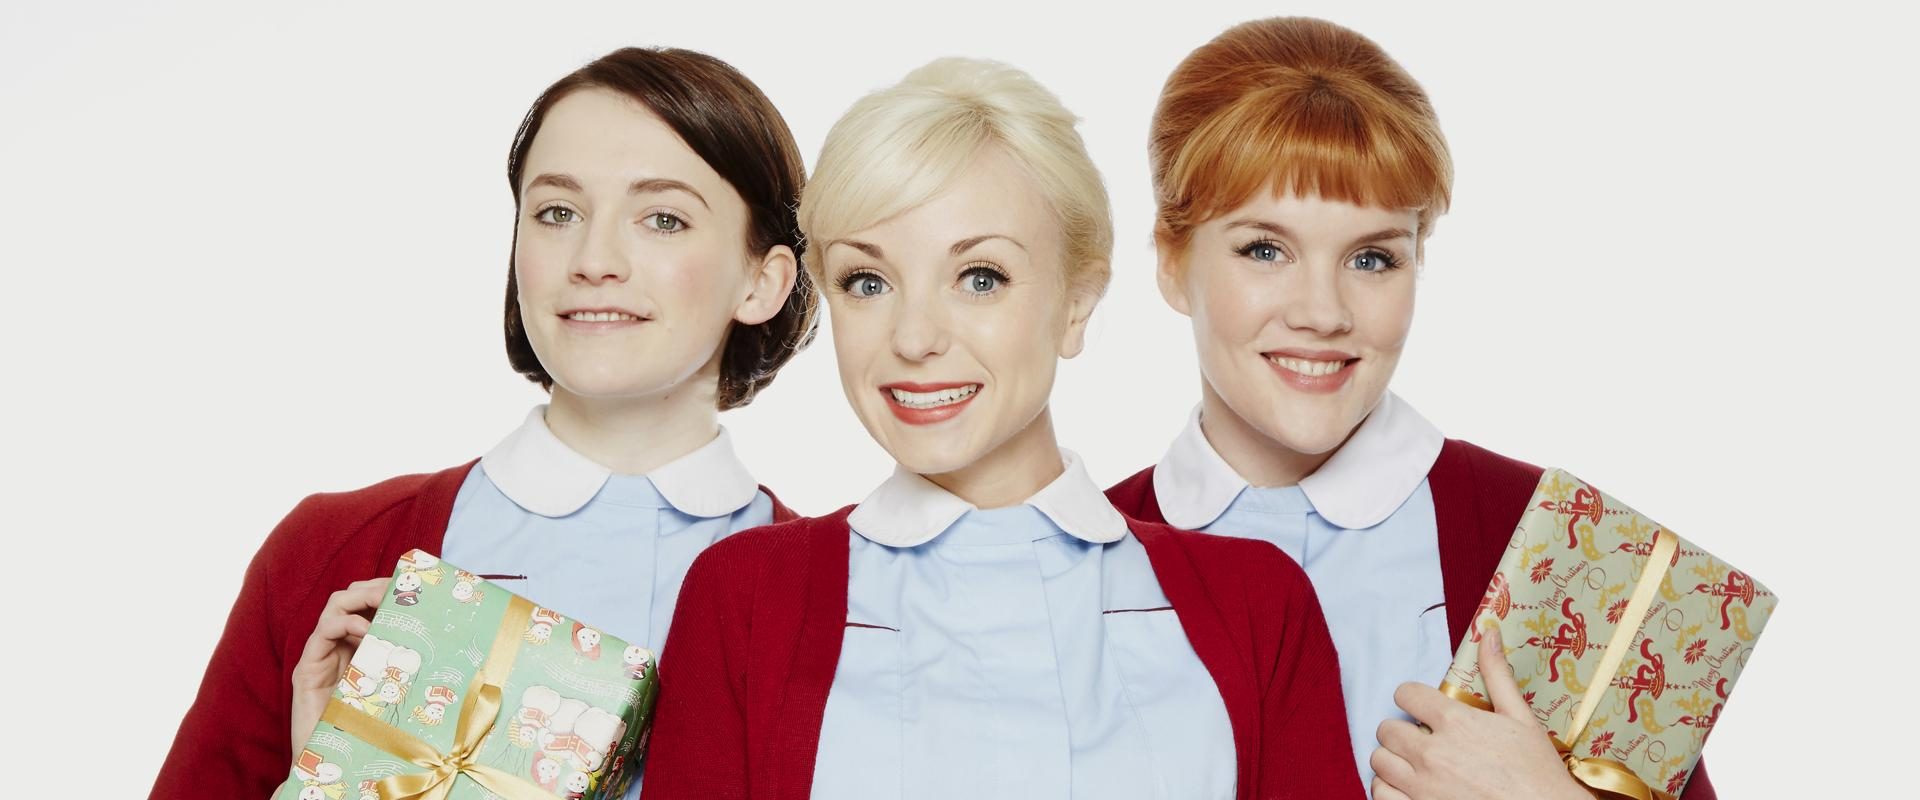 Nurse Barbara Gilbert (CHARLOTTE RITCHIE), Nurse Trixie Franklin (HELEN GEORGE), Nurse Patsy Mount (EMERALD FENNELL) CALL THE MIDWIFE S5 - CHRISTMAS SPECIAL 19HolidayTVPicks